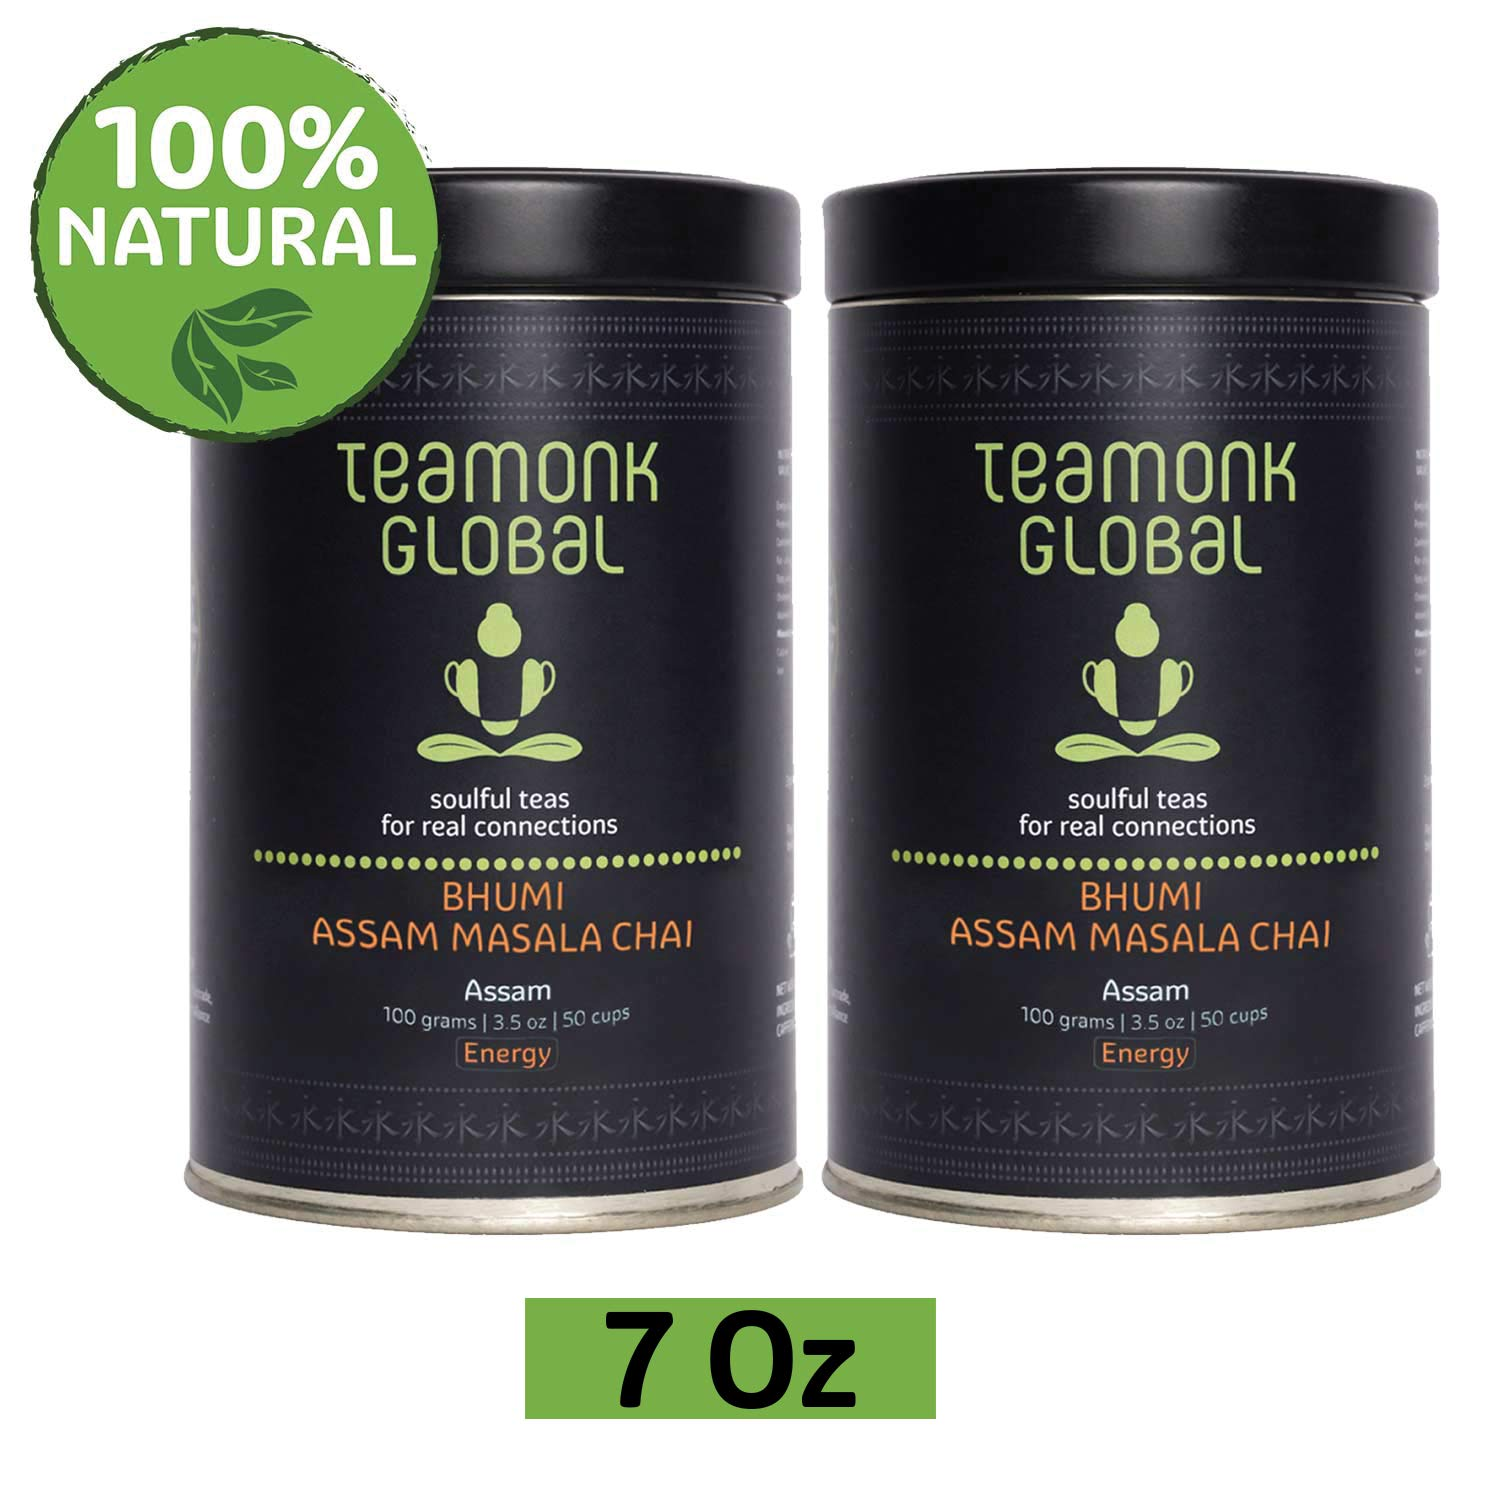 Bhumi Assam Masala Chai | 100% Natural Whole Leaf Tea | Natural Ingredients: Cinnamon, Clove, Cardamon, Ginger | Relax & Refresh | No Additives - 3.5oz (50 Cups) Teamonk Global